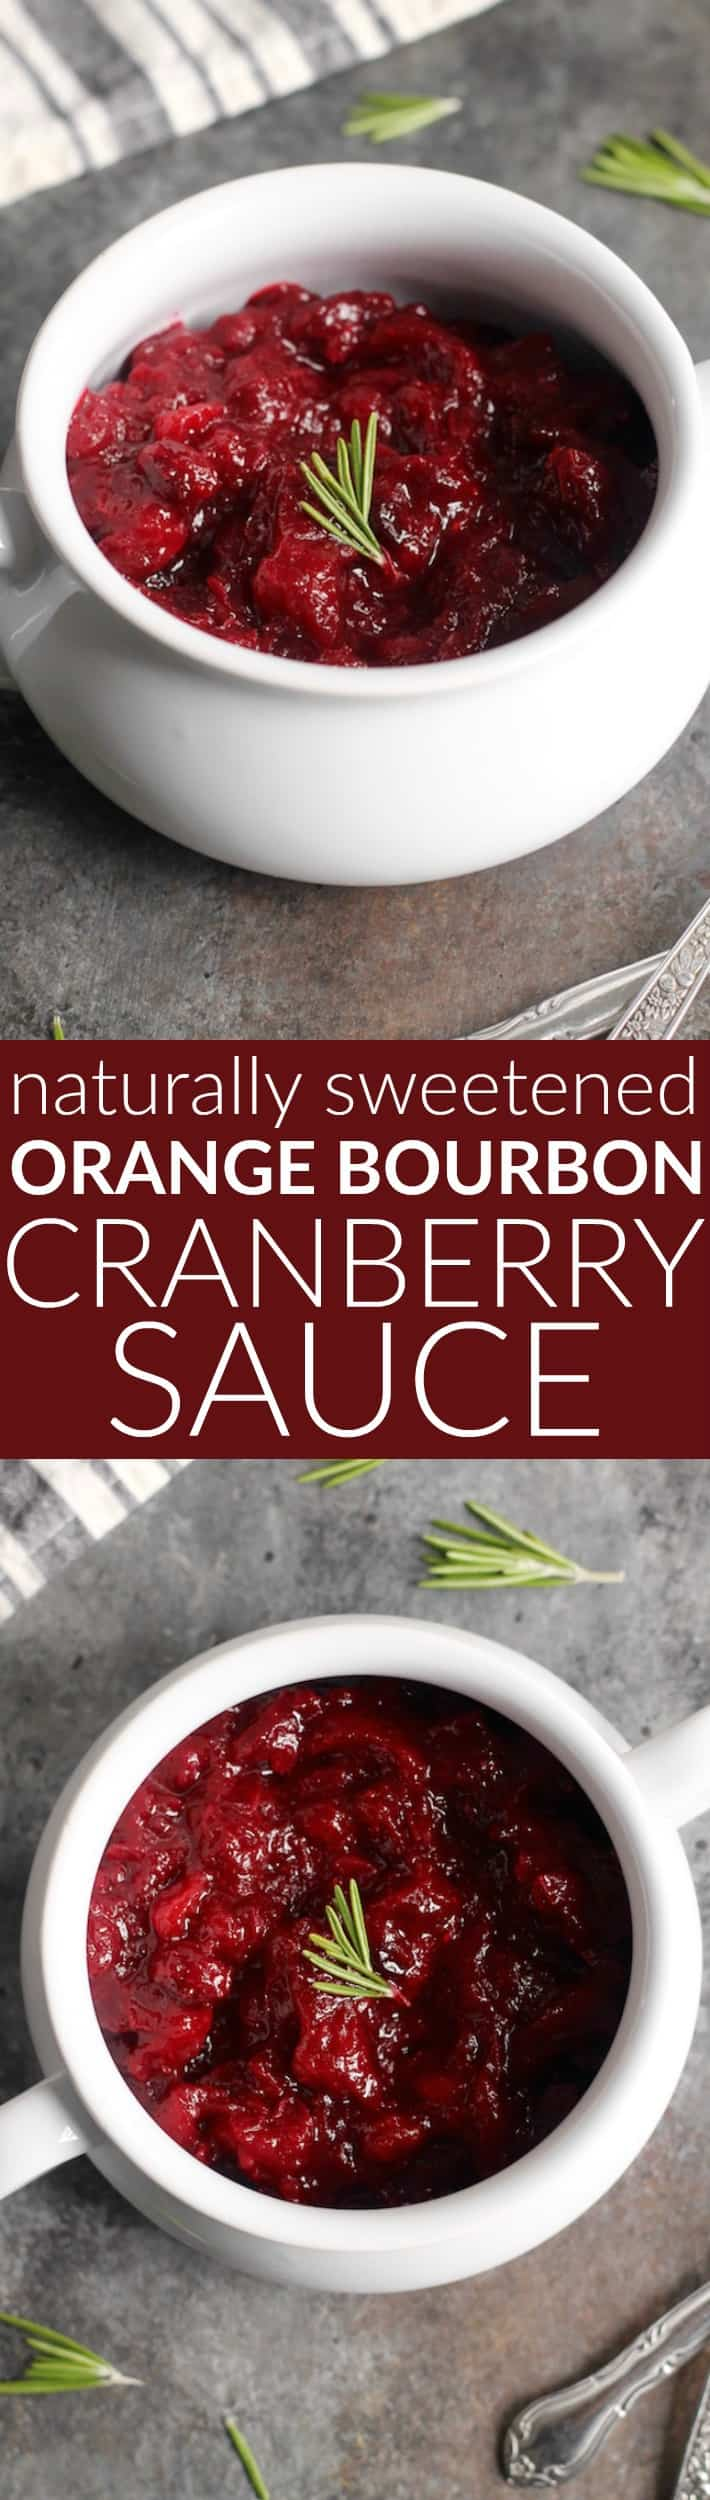 This epic Orange Bourbon Cranberry Sauce is sweetened naturally with pure maple syrup.